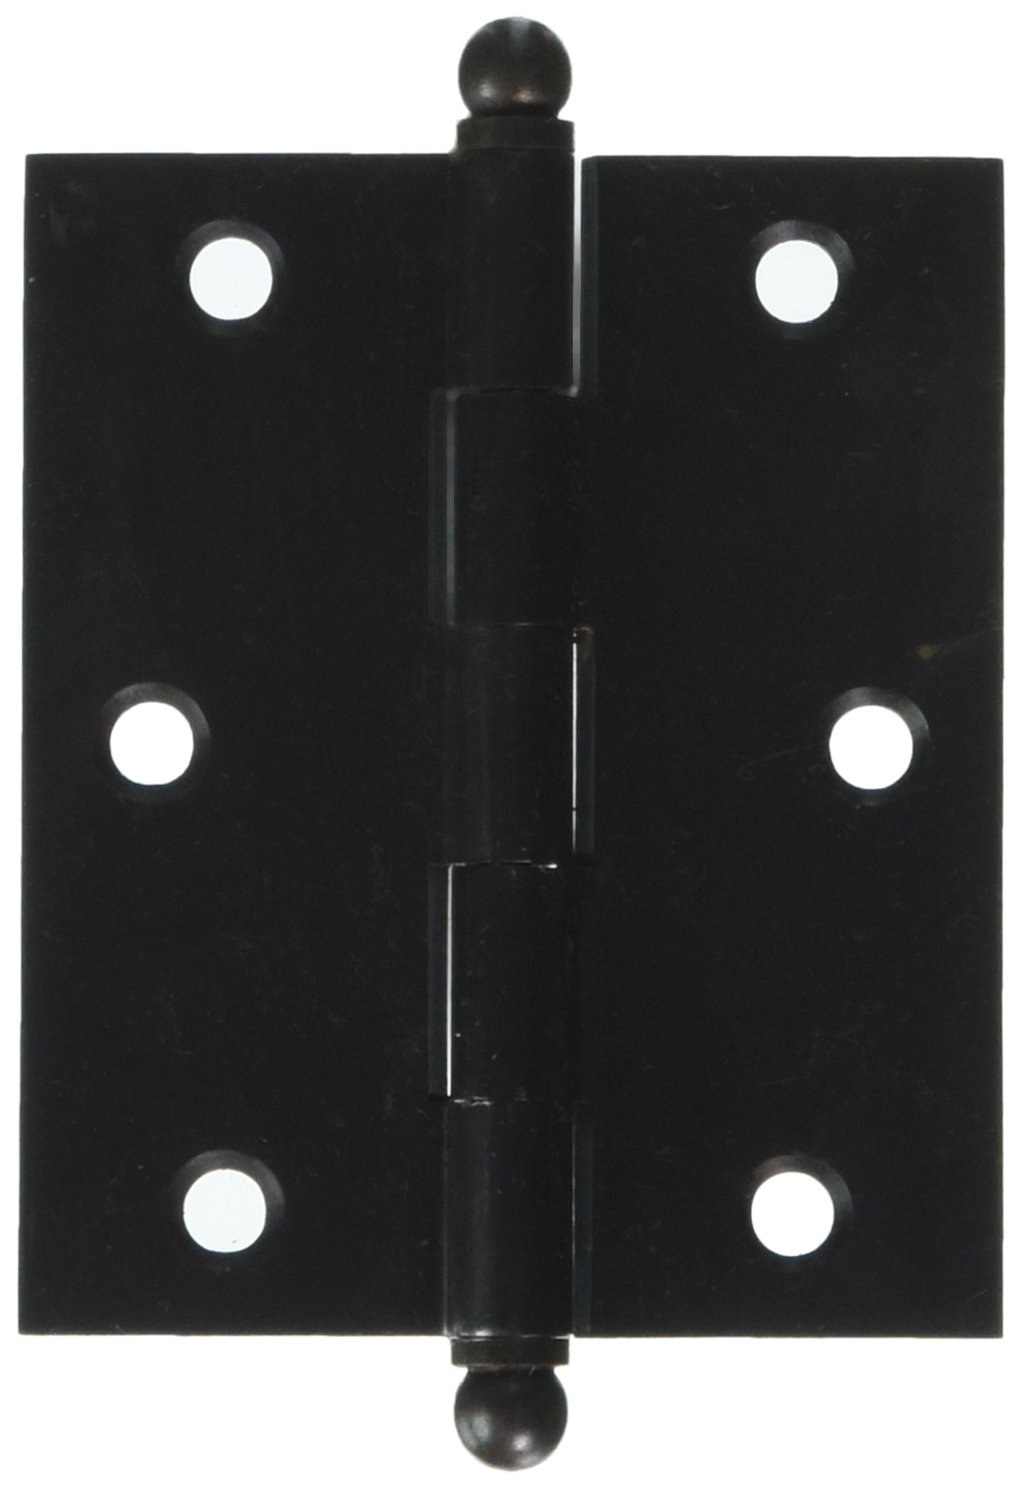 Deltana CH3025U10B Solid Brass 3-Inch x 2-1/2-Inch Cabinet Hinge with Ball Tips by Deltana